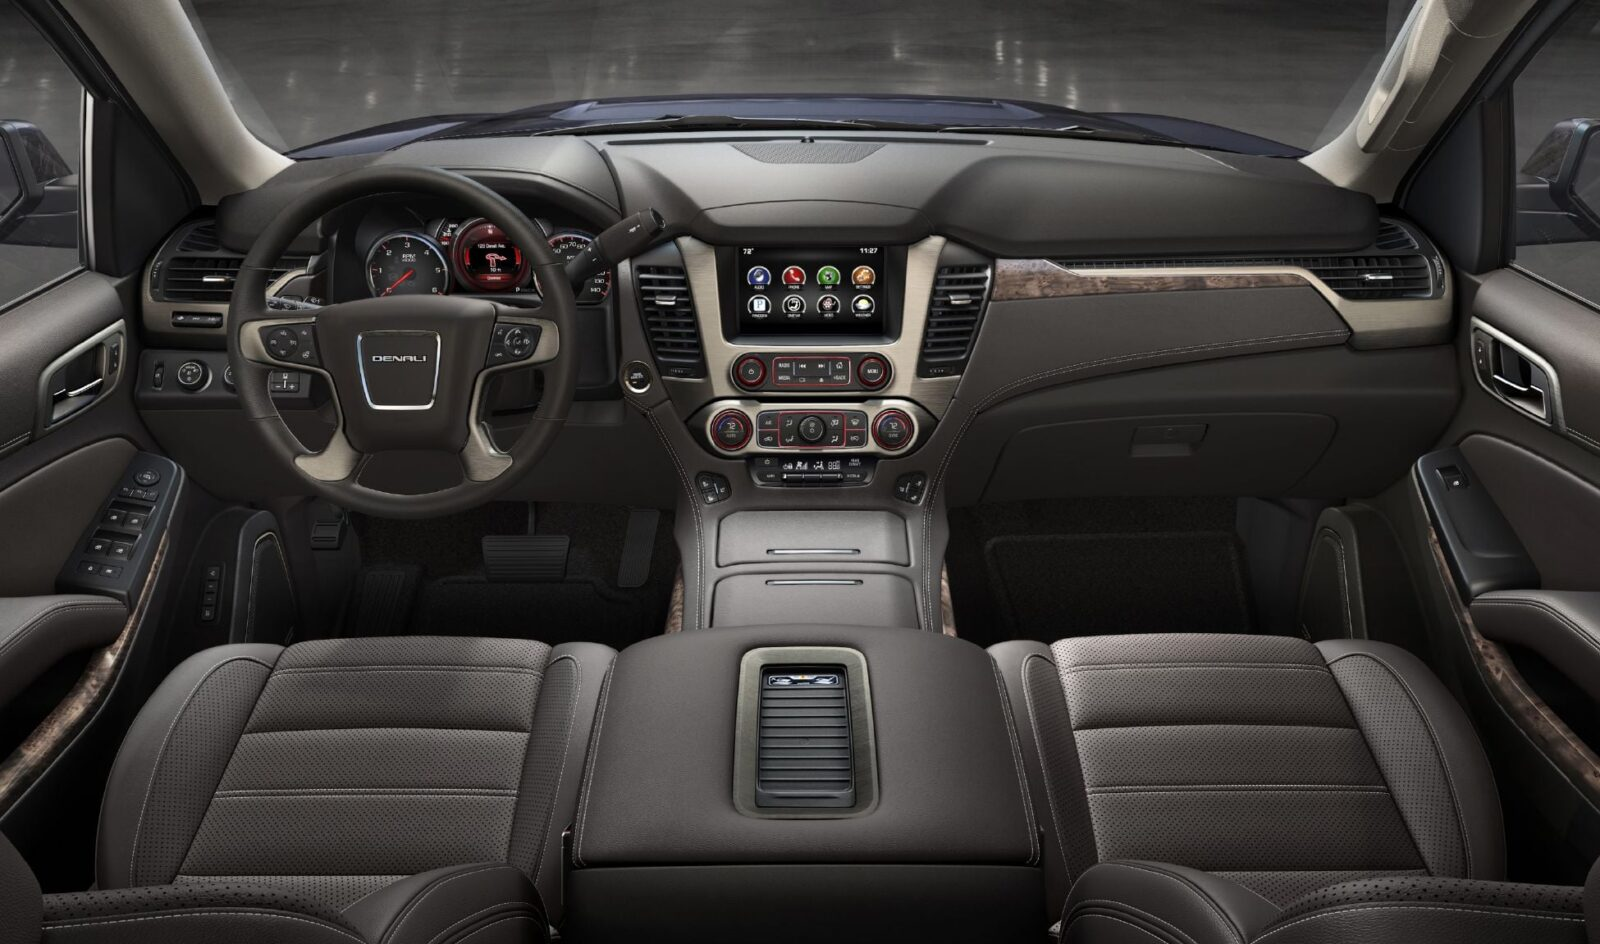 2016 Cadillac Escalade Interior >> 2016 GMC Yukon Denali wallpapers HD High Resolution